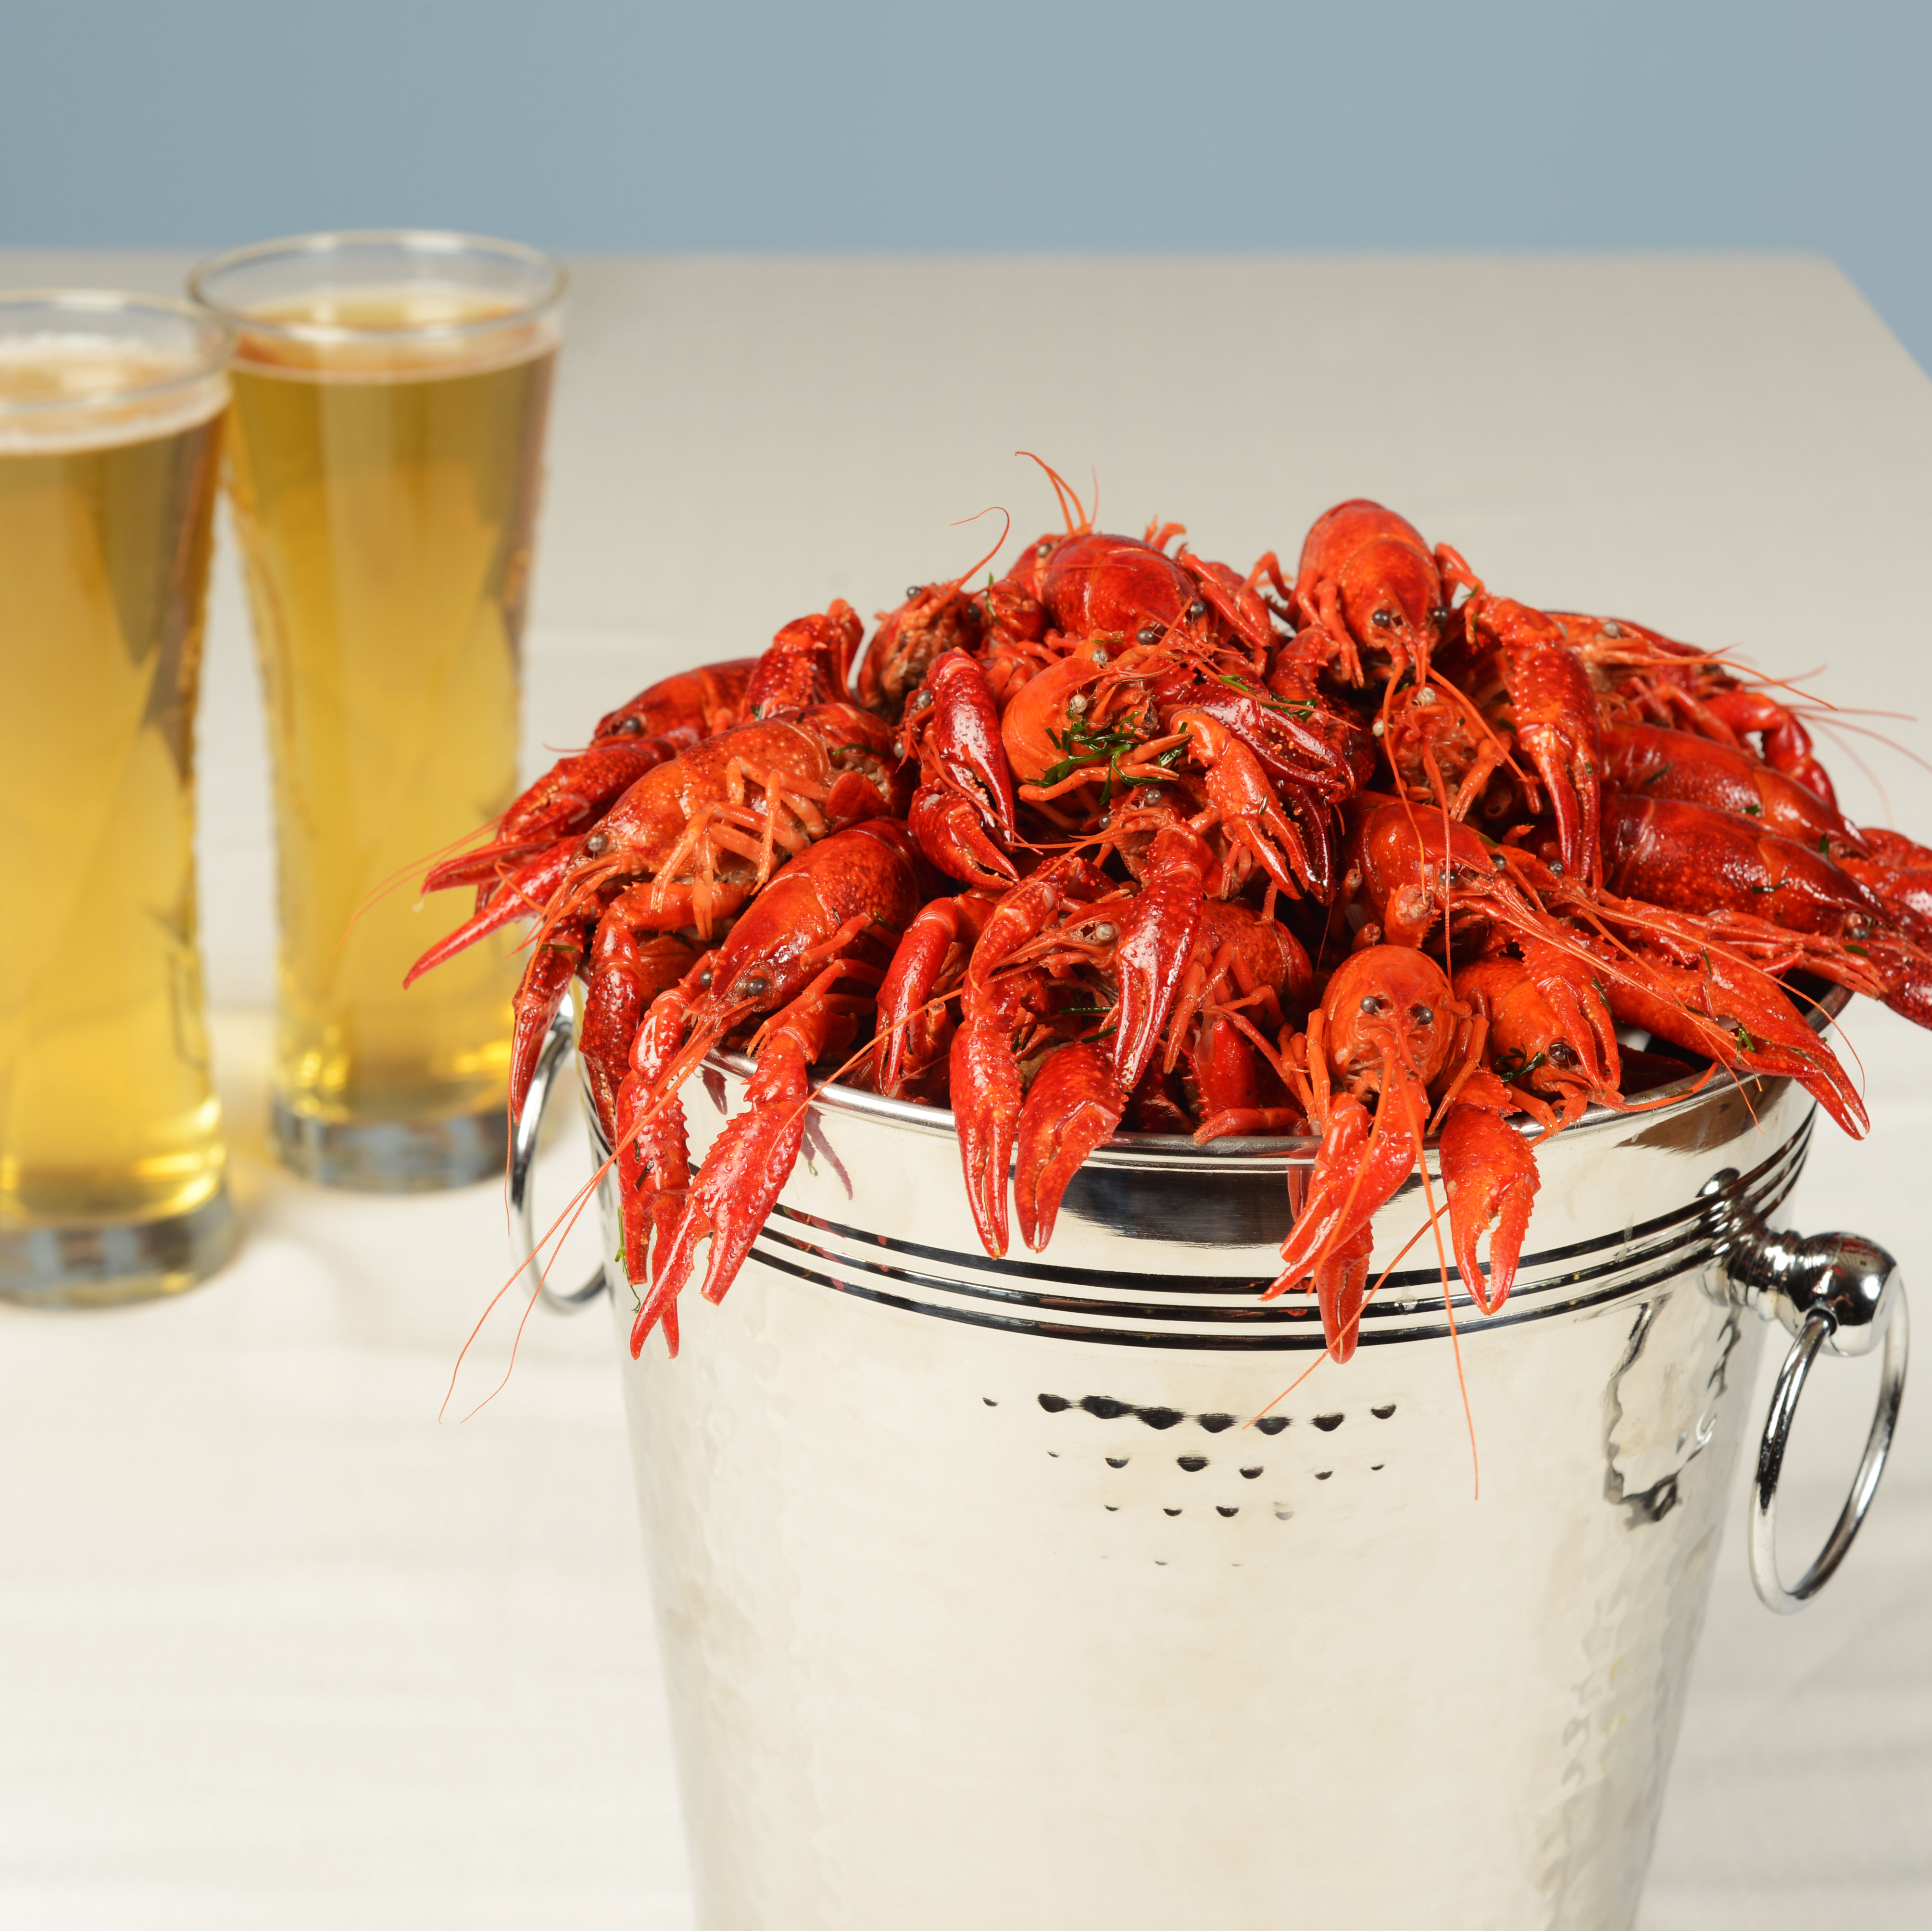 0317 crawfish feature beer and crawfish qb33du